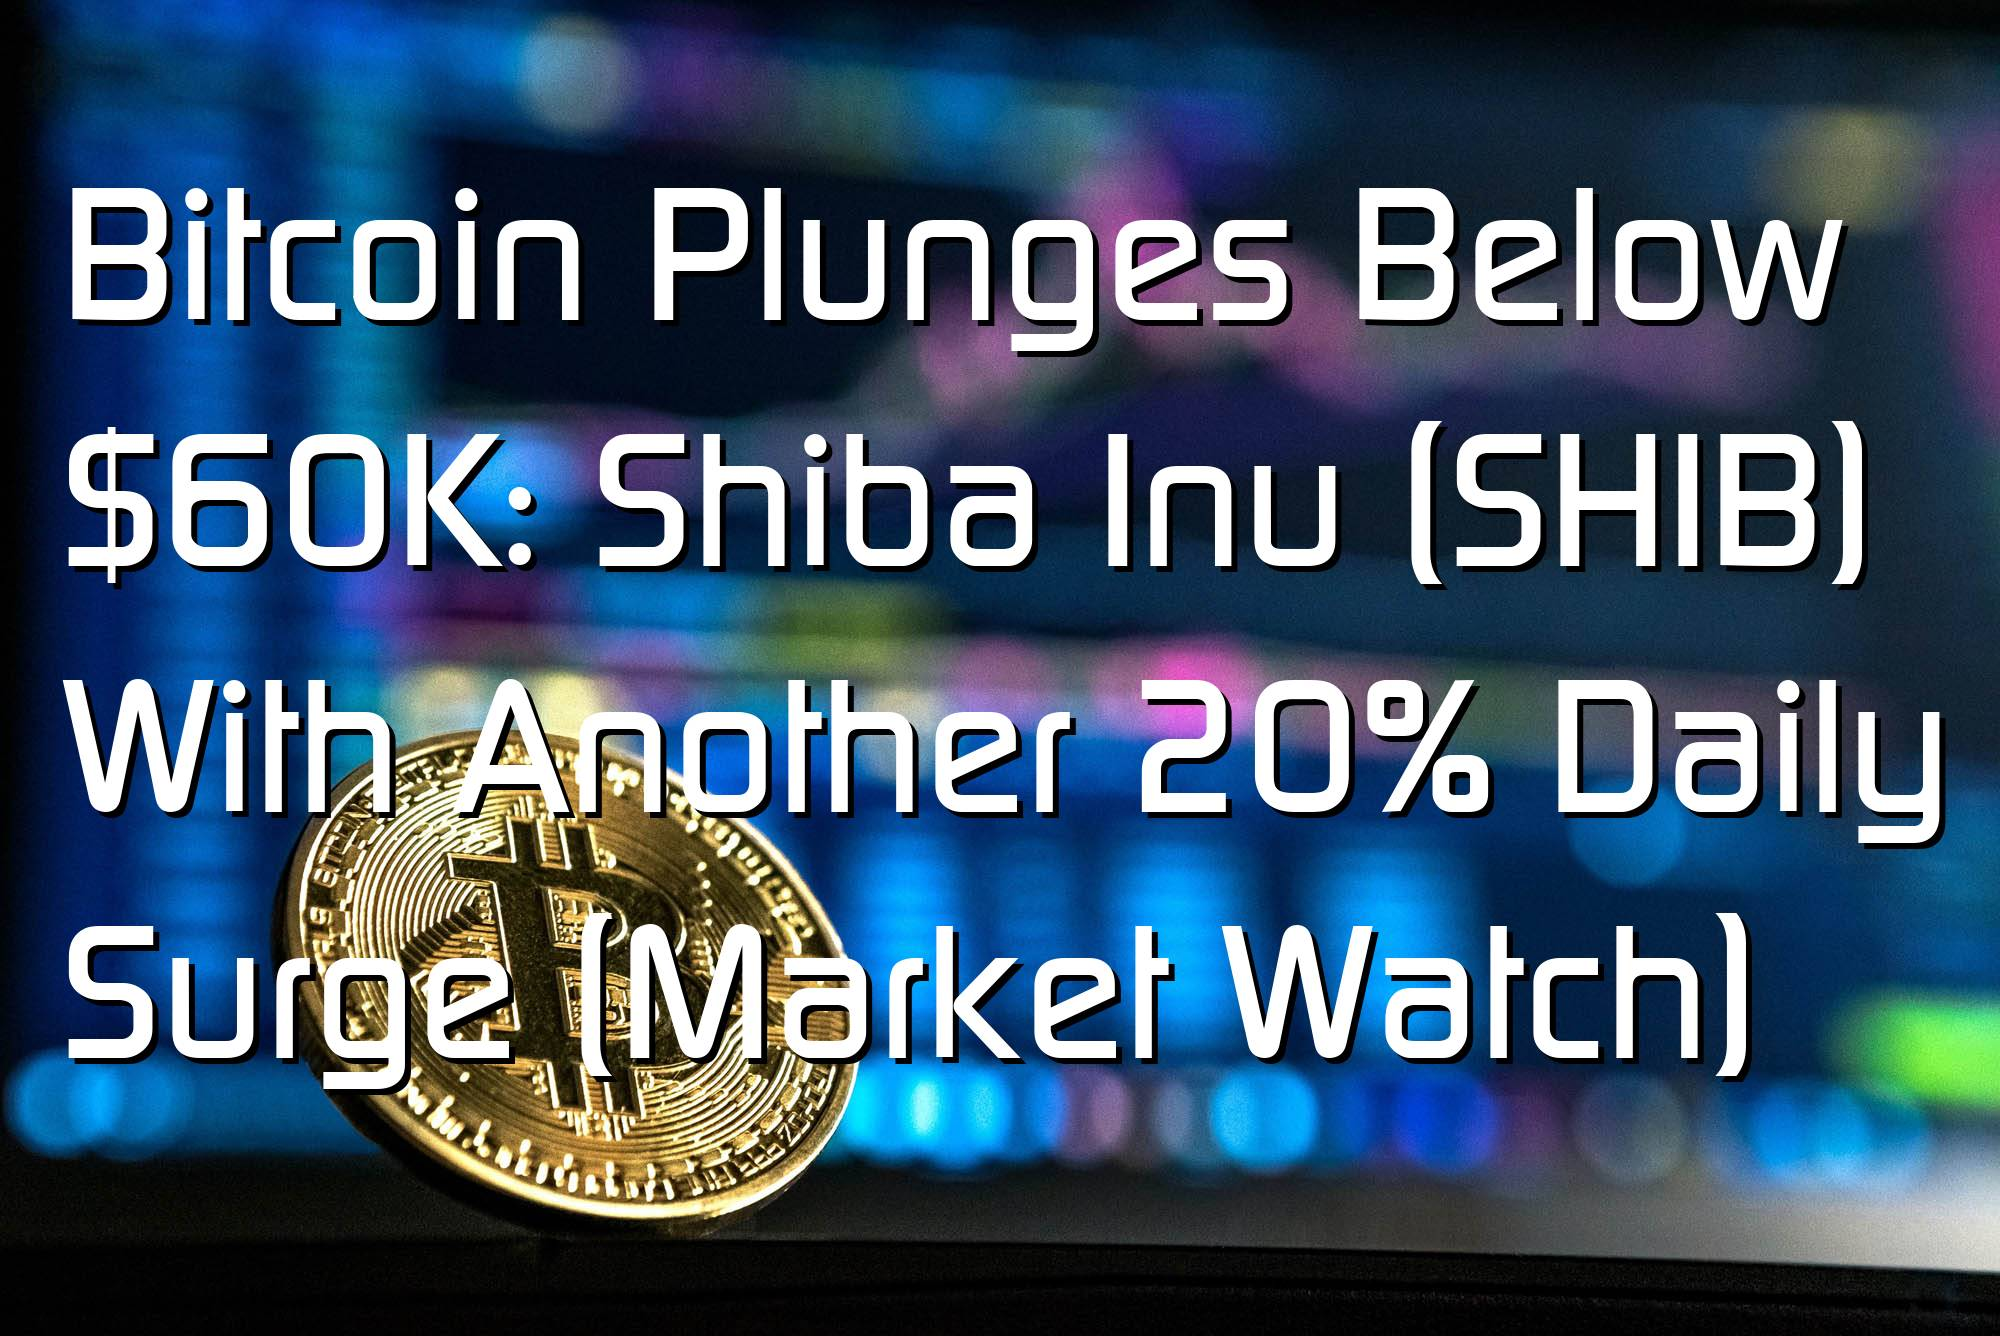 @$59081: Bitcoin Plunges Below $60K: Shiba Inu (SHIB) With Another 20% Daily Surge (Market Watch)